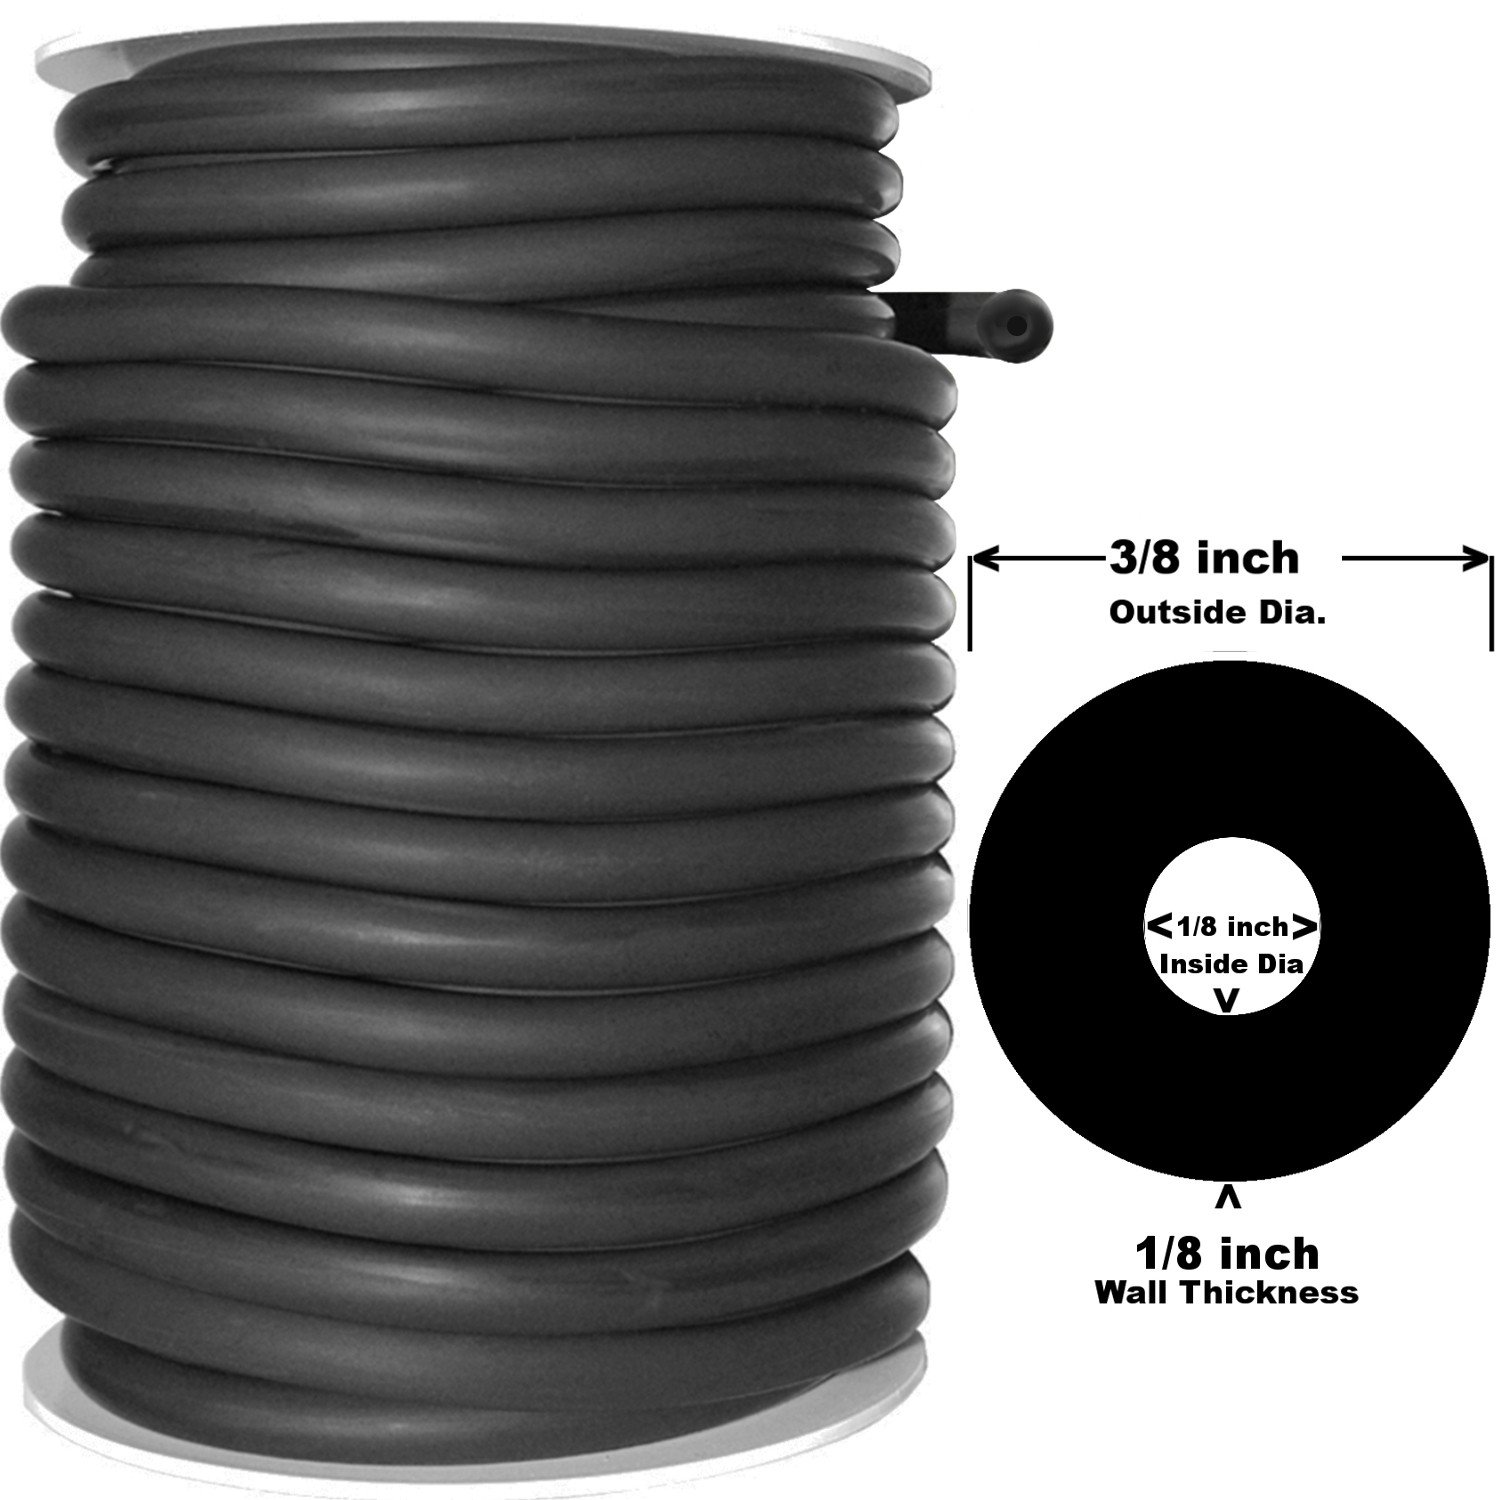 50 Feet Black Rubber Latex Thick Walled Tubing (Speargun Band Tubing) 3/8''OD 1/8''ID (408B) by Spearit